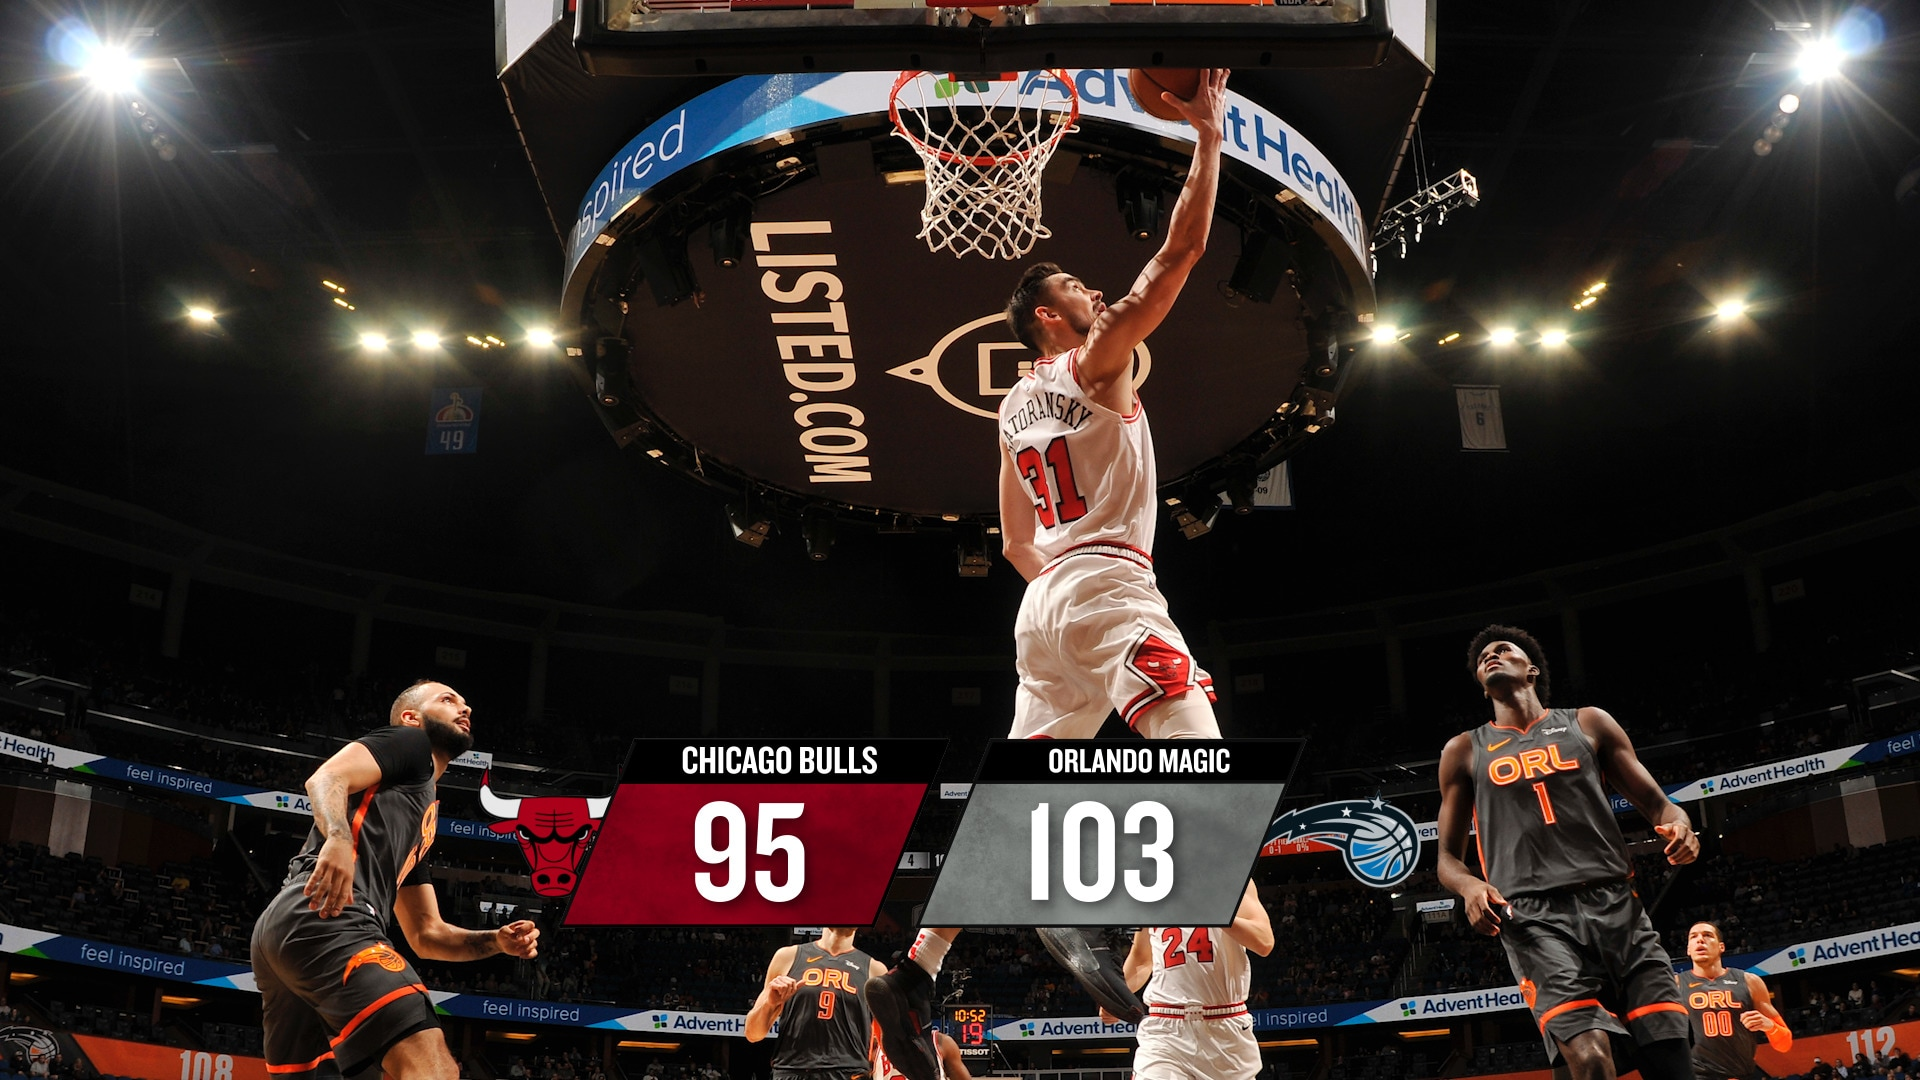 BullsTV Recap: Bulls 95, Magic 103 - 12.23.19